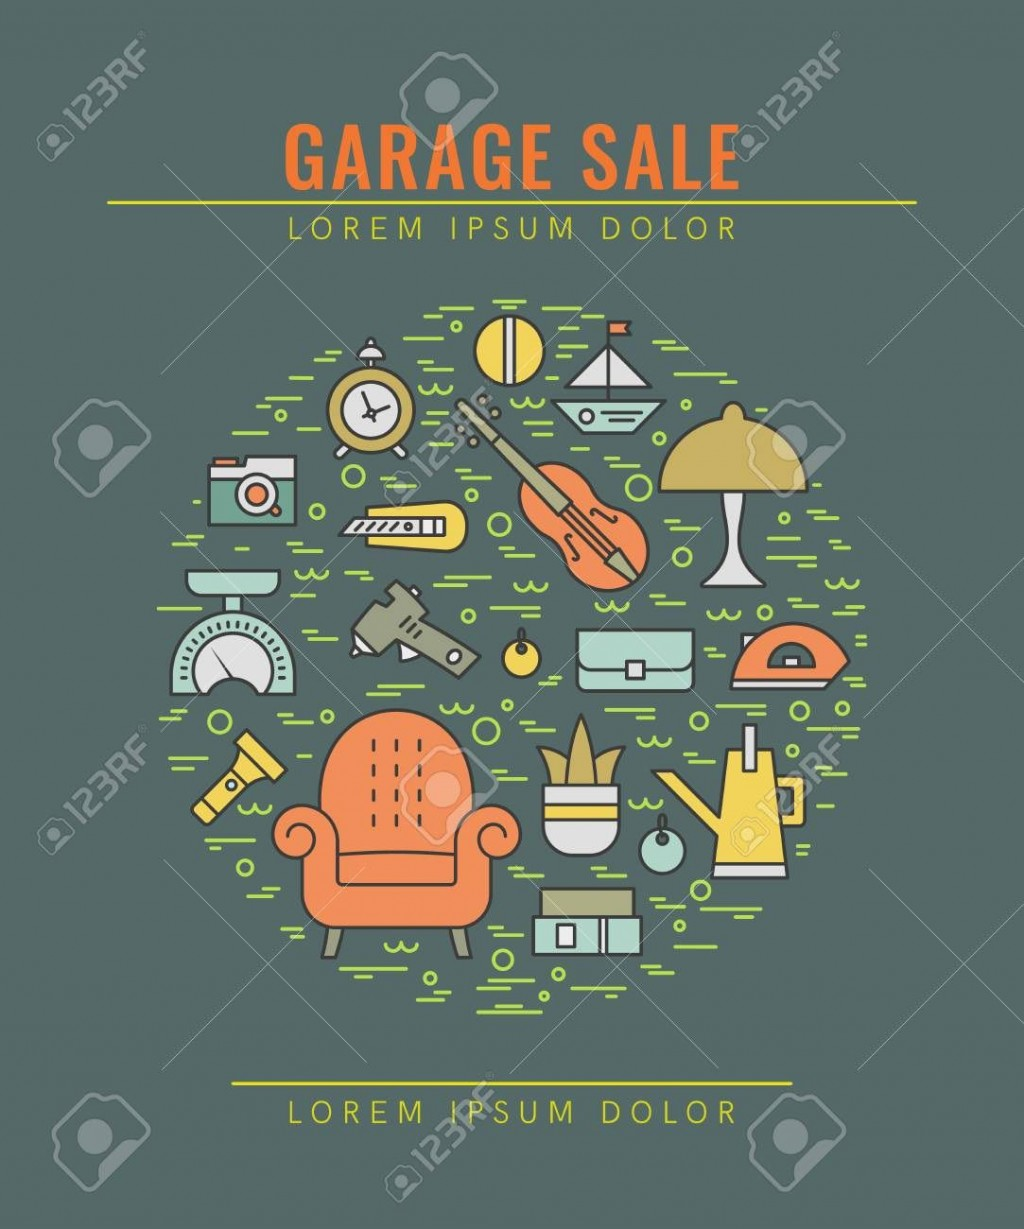 004 Exceptional Yard Sale Flyer Template Free Picture  Community GarageLarge